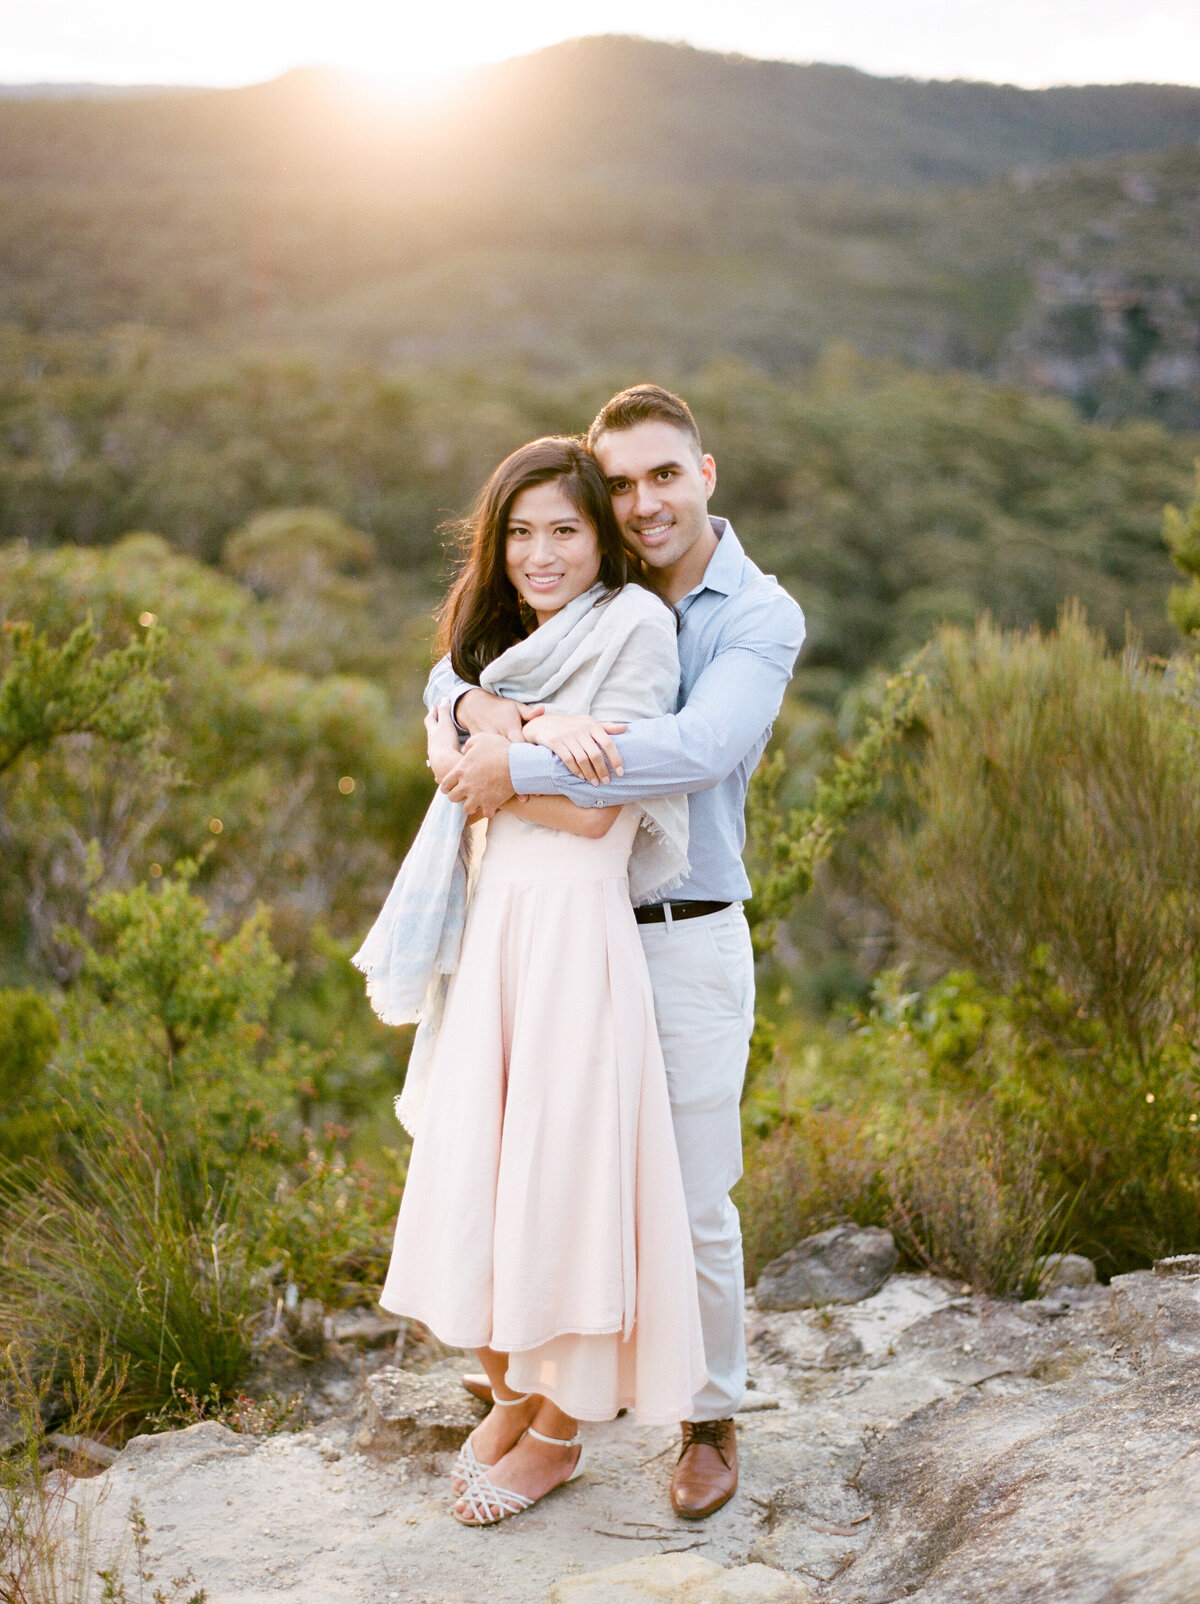 weareorigami-katrina-michael-engagement-0032